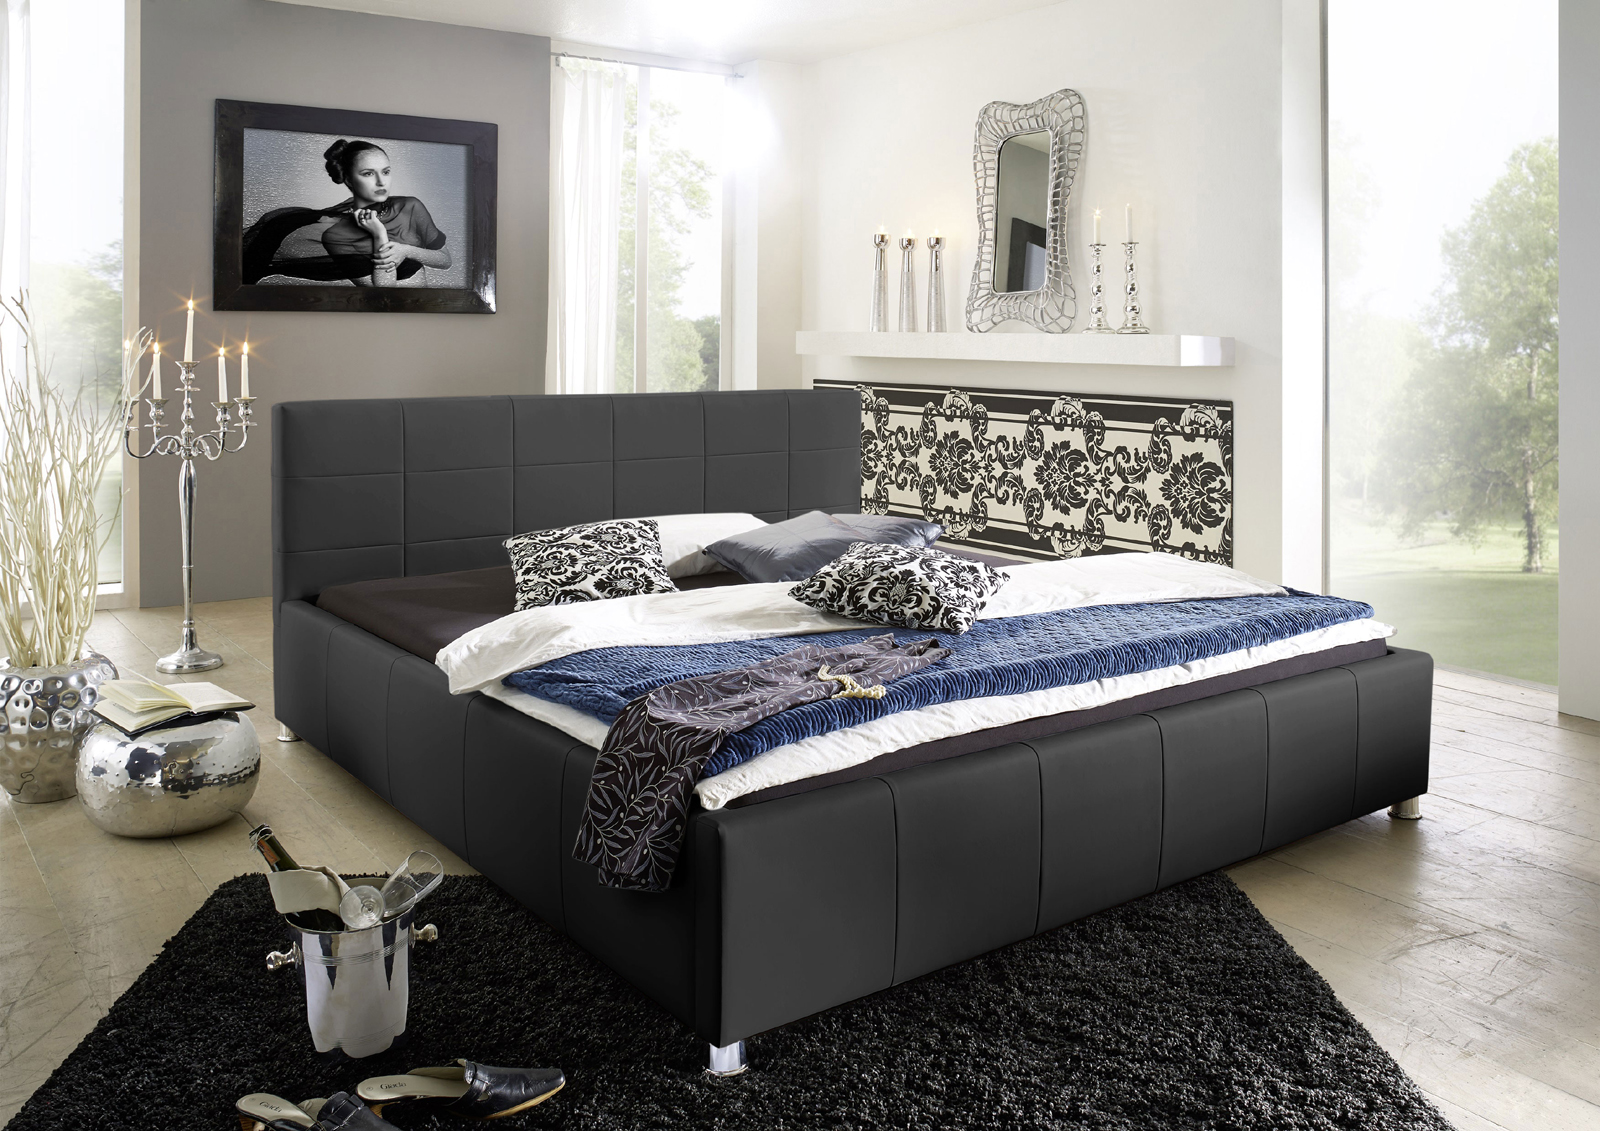 sam design bett 100 x 200 cm schwarz kira g nstig. Black Bedroom Furniture Sets. Home Design Ideas